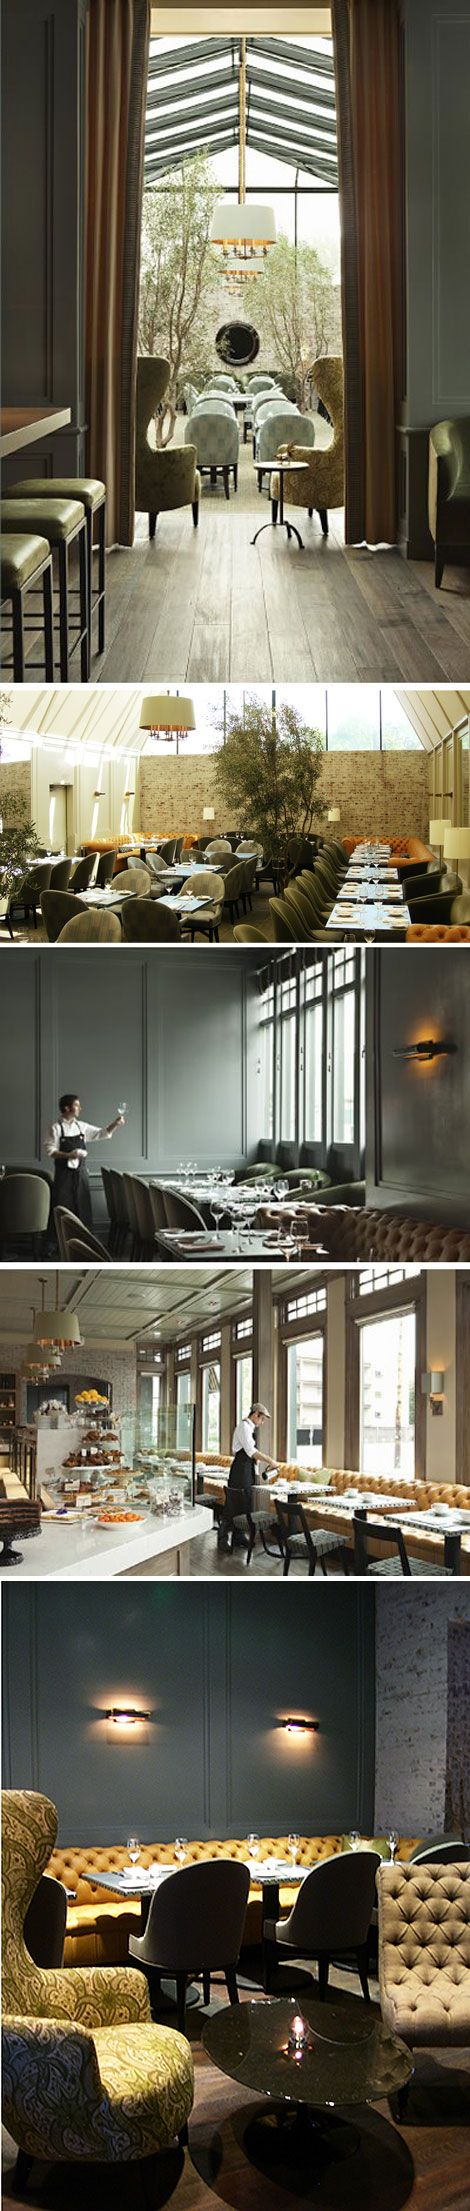 80 best for G6 images on Pinterest | Home ideas, Living room and ...